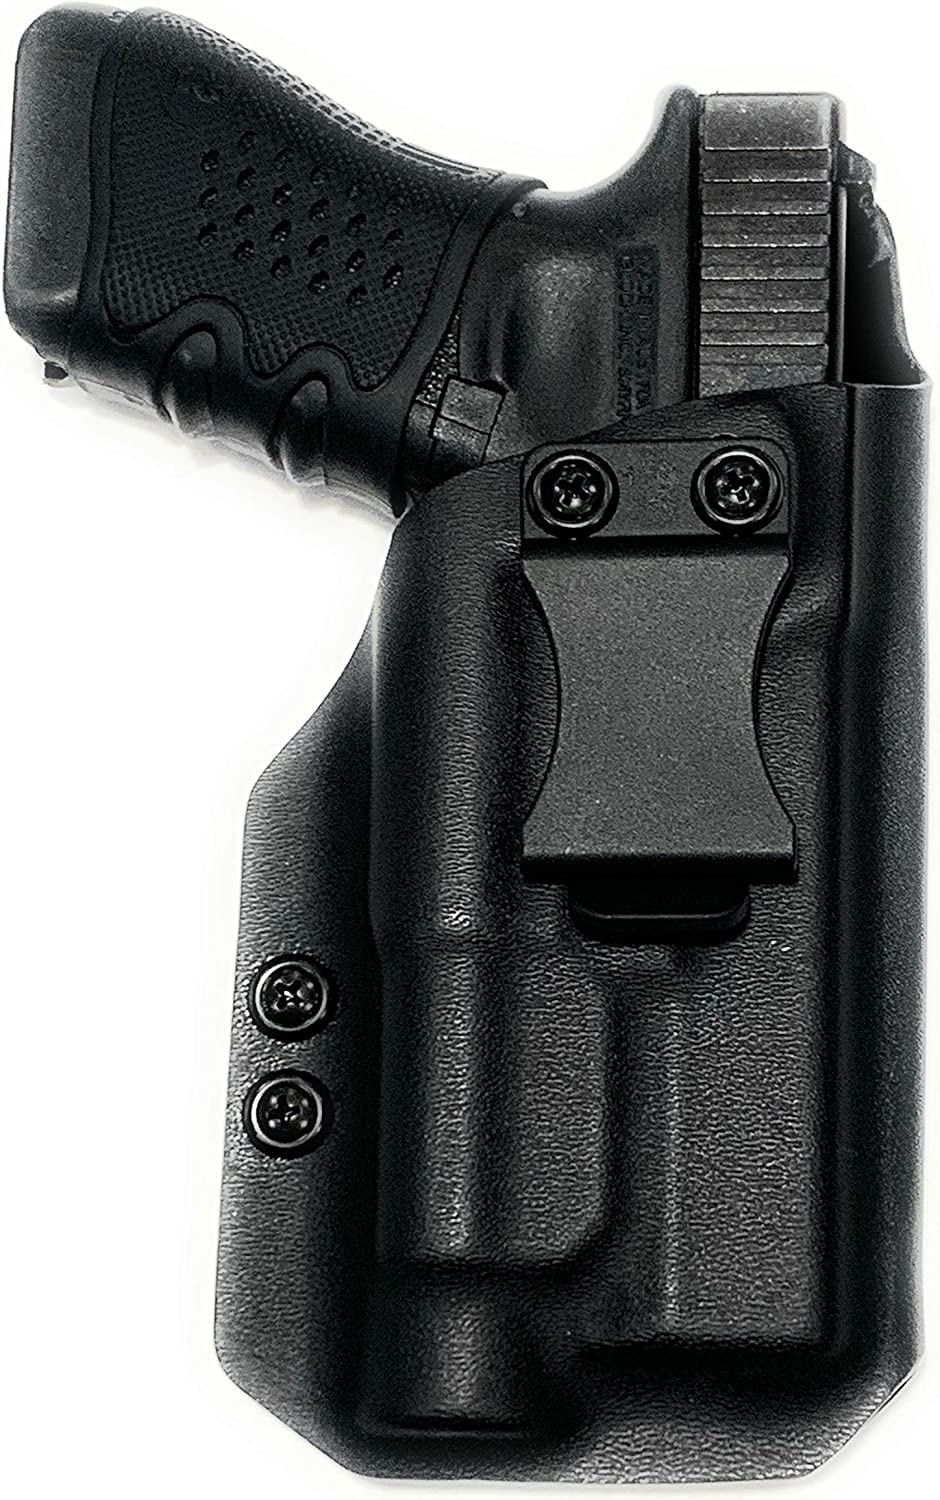 Kydex IWB Holster Oakland Mall for Glock 17 Ranking integrated 1st place with 31 22 TLR1